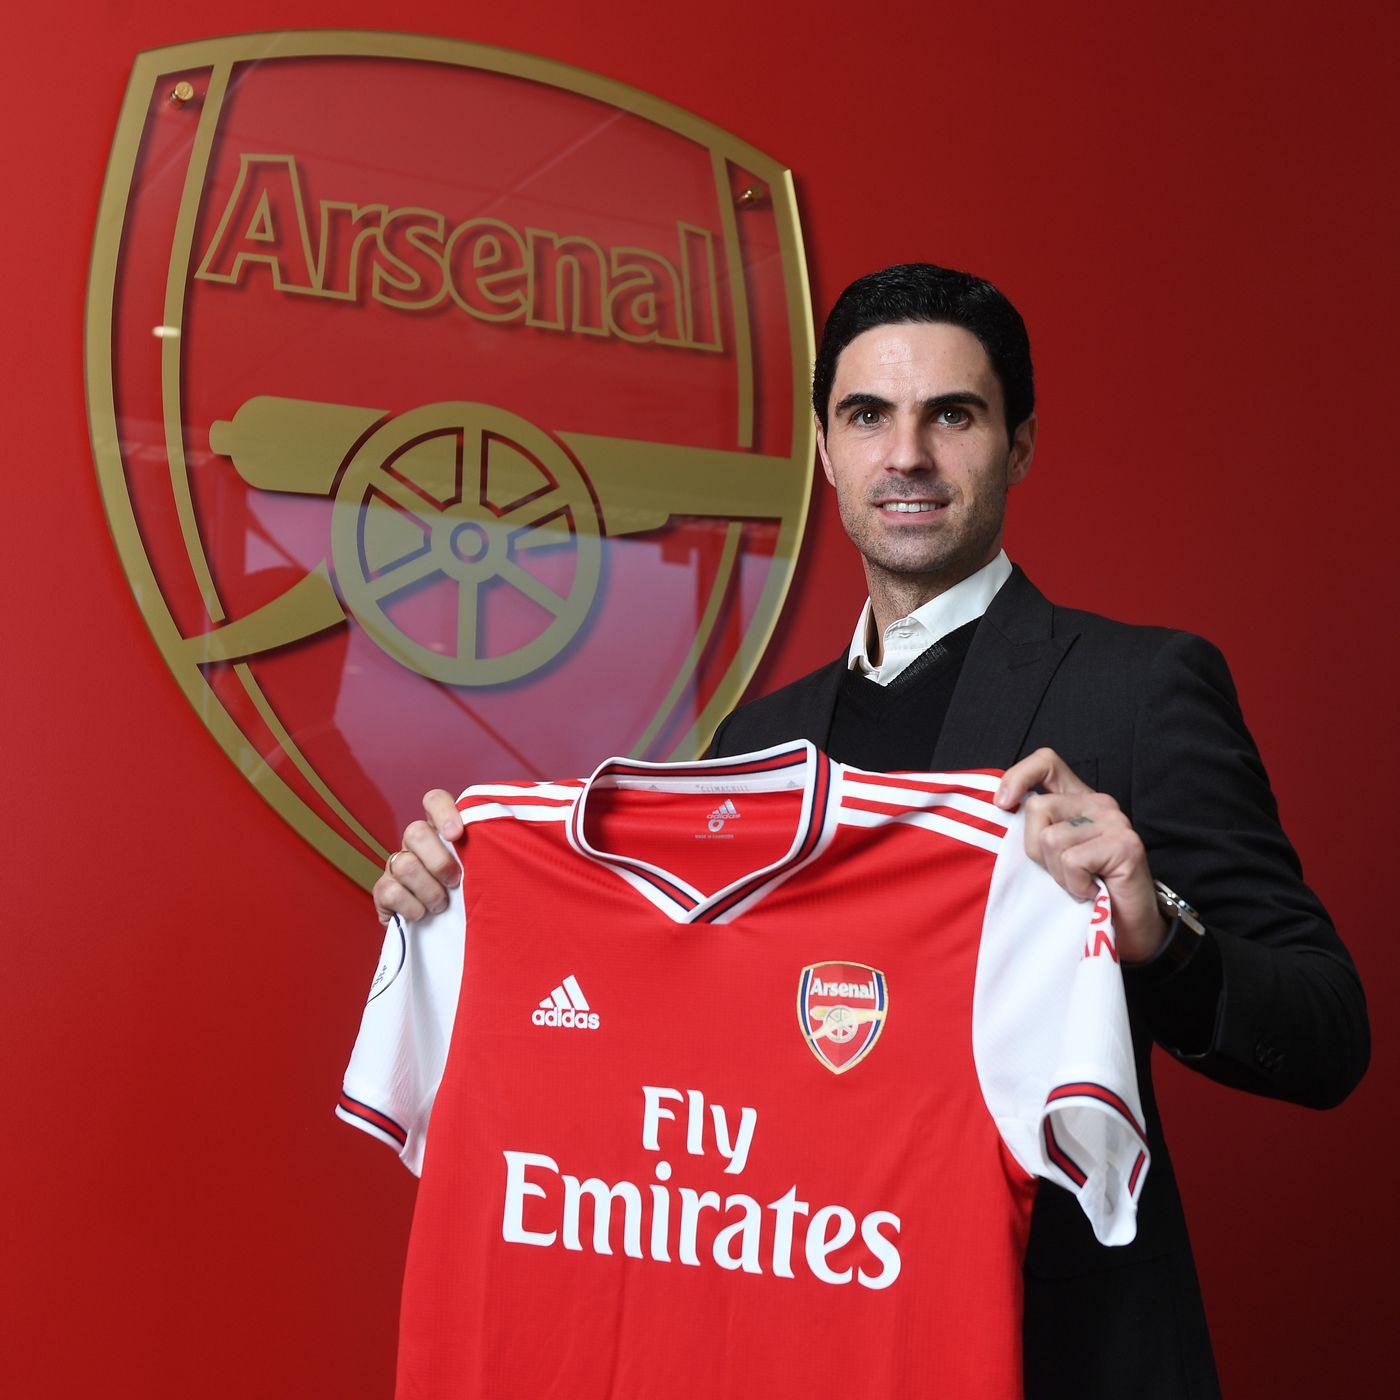 Mikel Arteta From Manchester City Hired As Arsenal S New Manager The Short Fuse